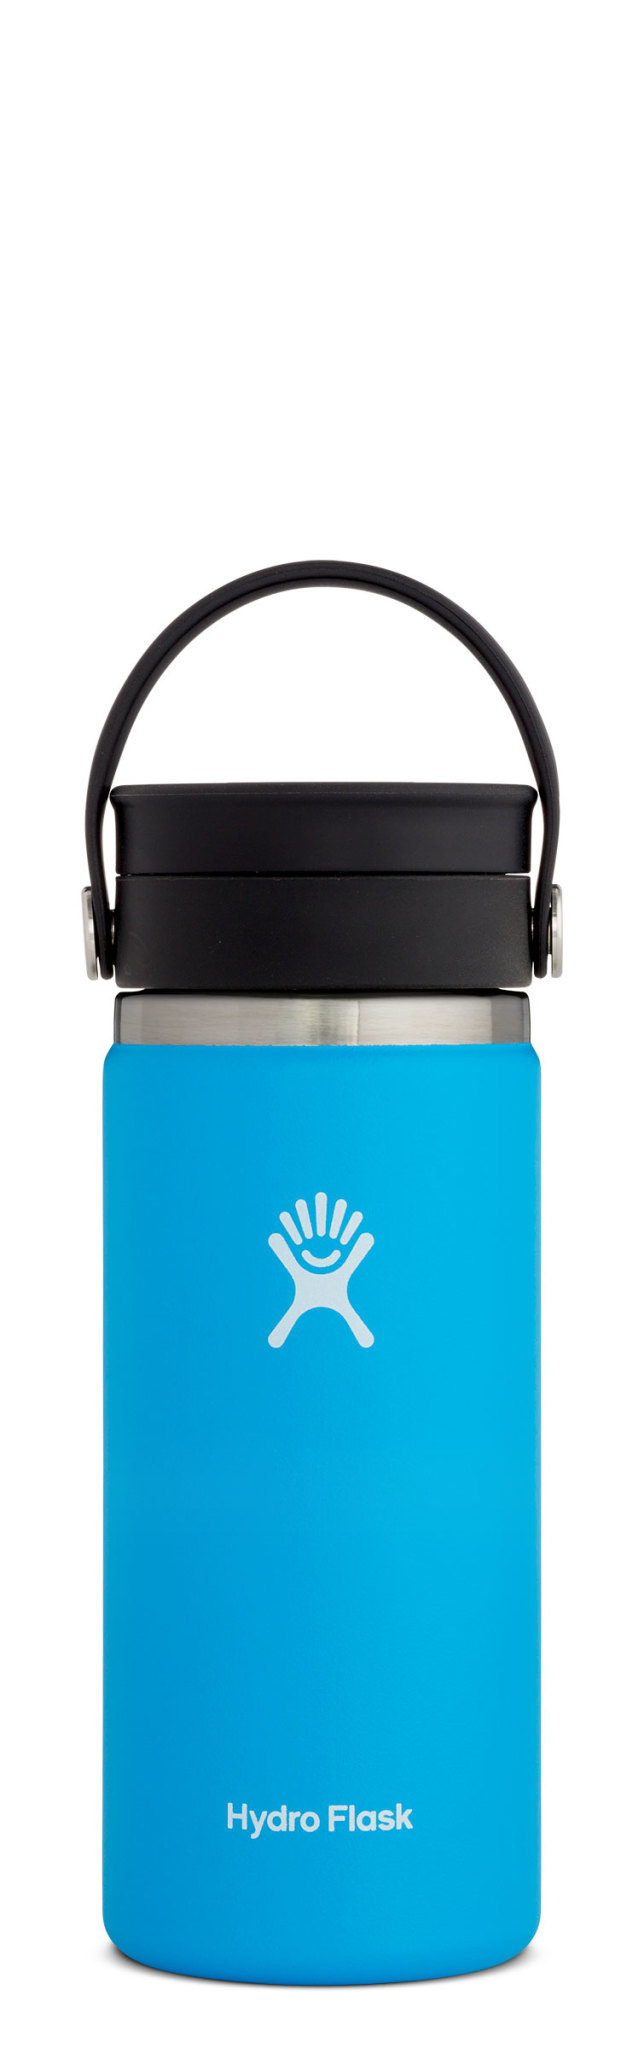 Hydro Flask 16oz Wide Mouth with Flex Sip Lid-4